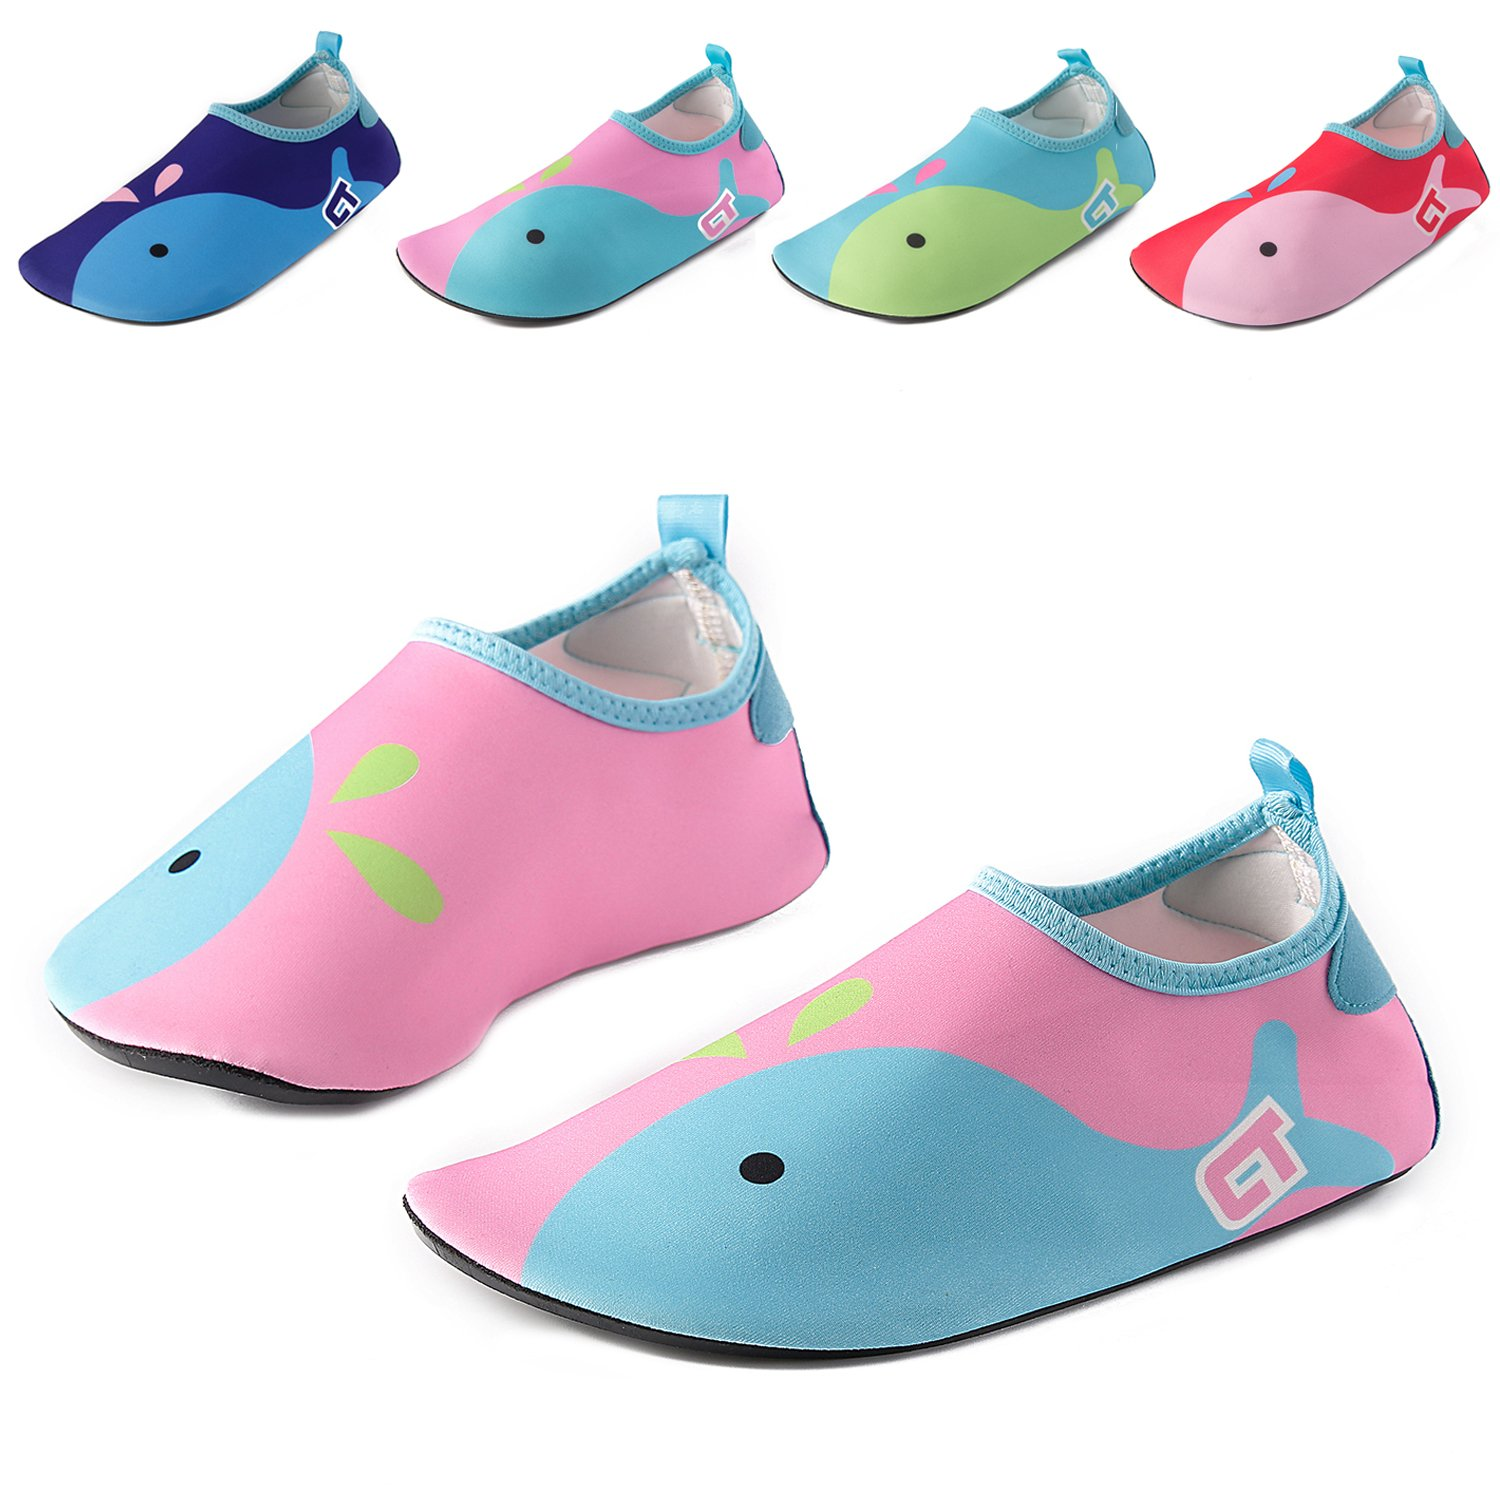 1b1a3dfa9b6b9 Vivay Kids Water Shoes Girls Boys Toddler Quick Dry Anti Slip Aqua Socks  for Beach Outdoor Sports